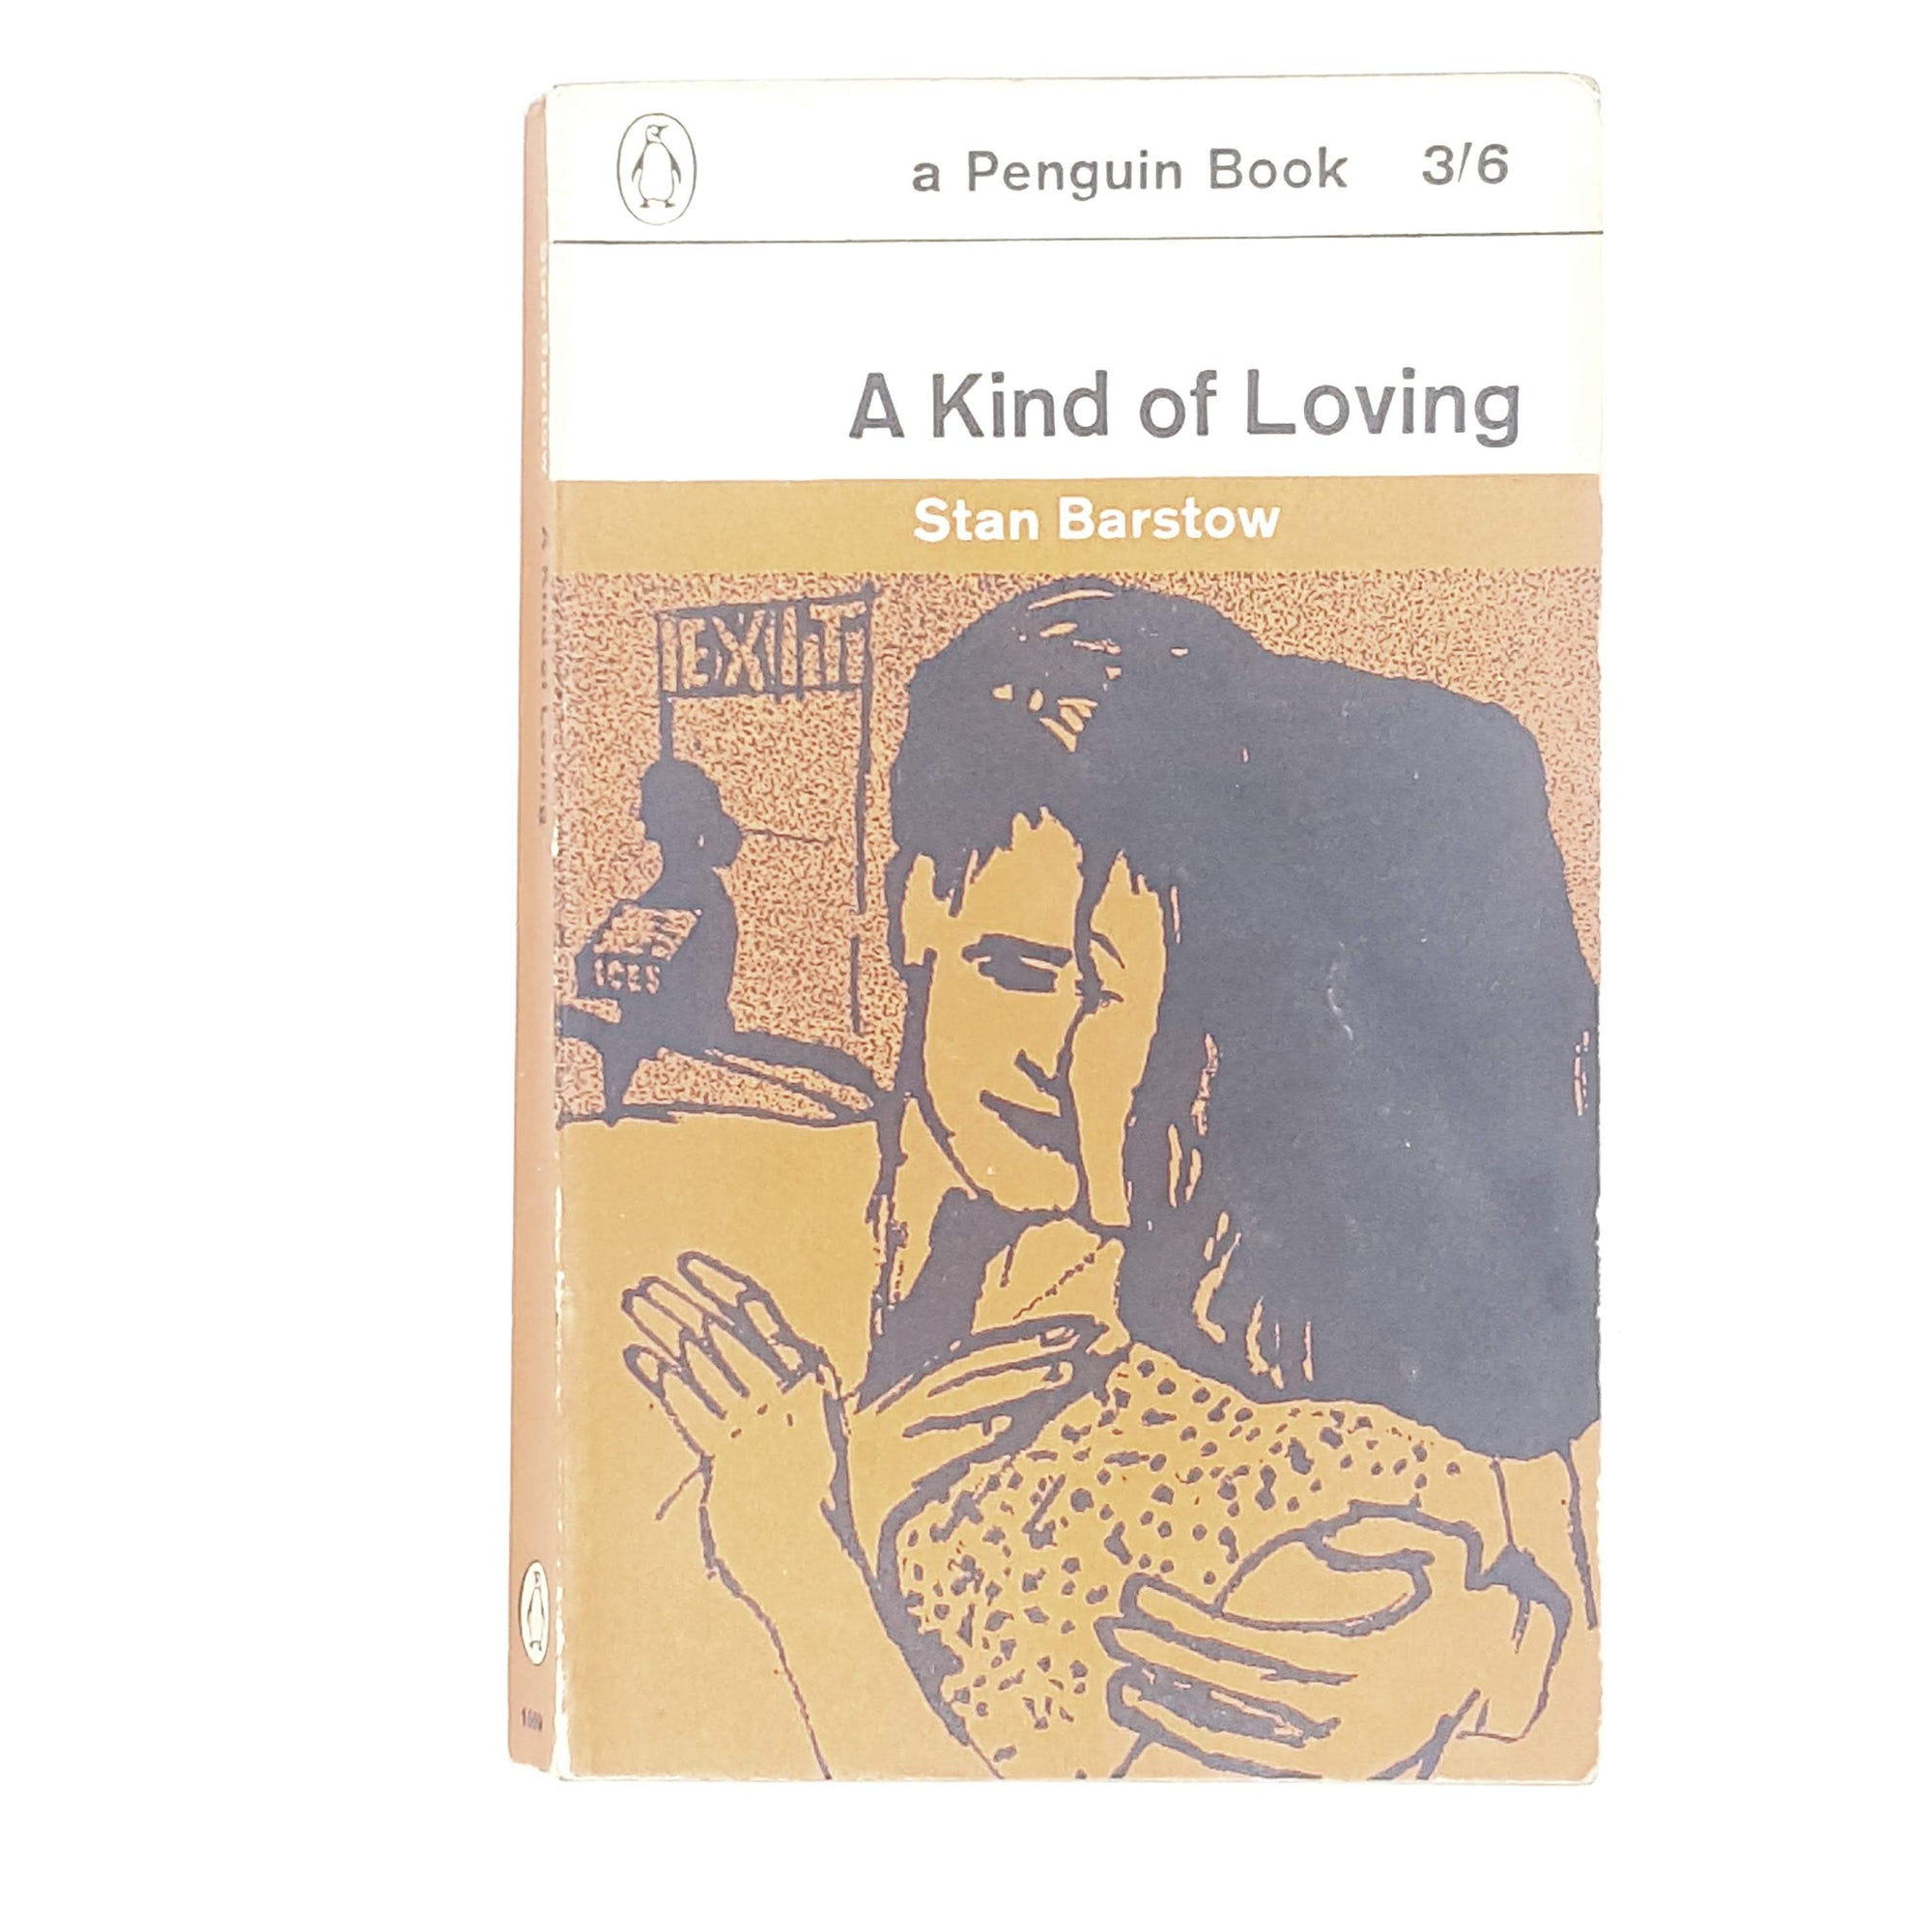 A Kind of Loving by Stan Barstow 1962